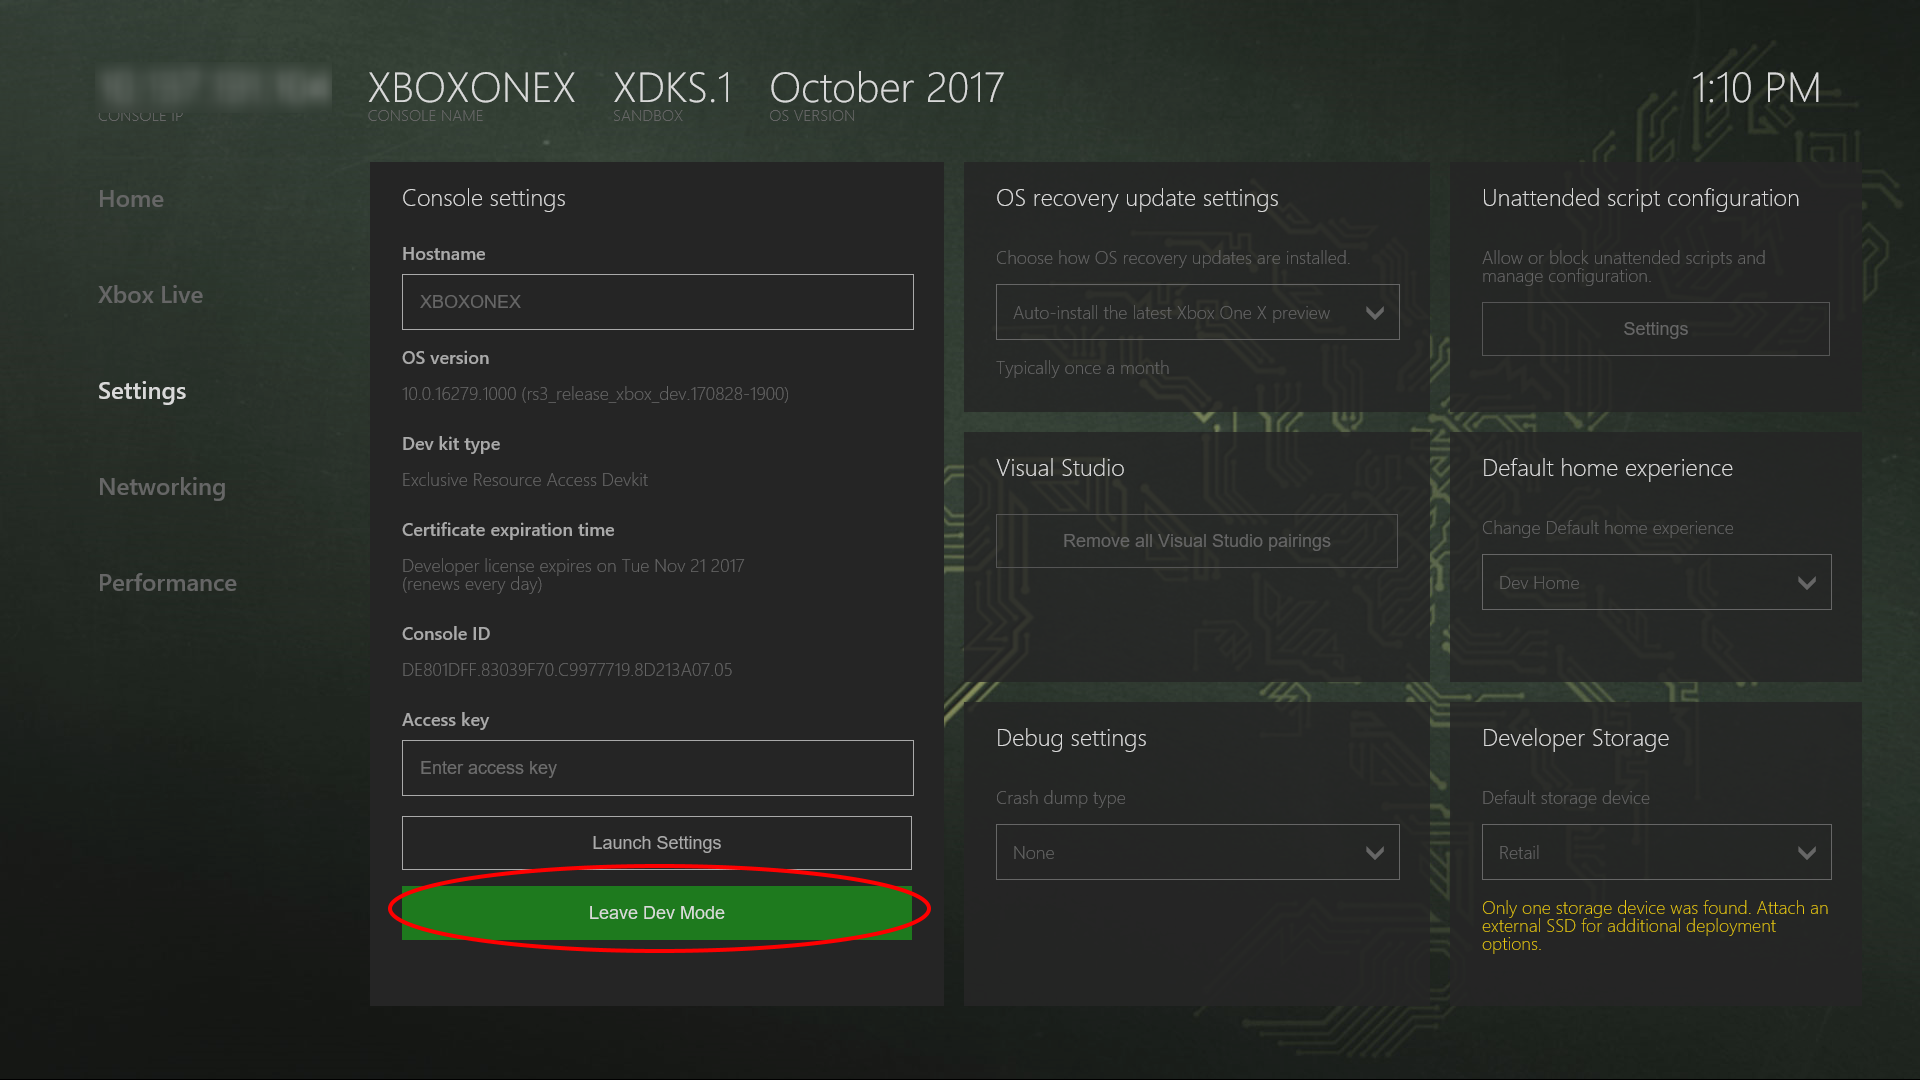 How to do hard reset on xbox one s